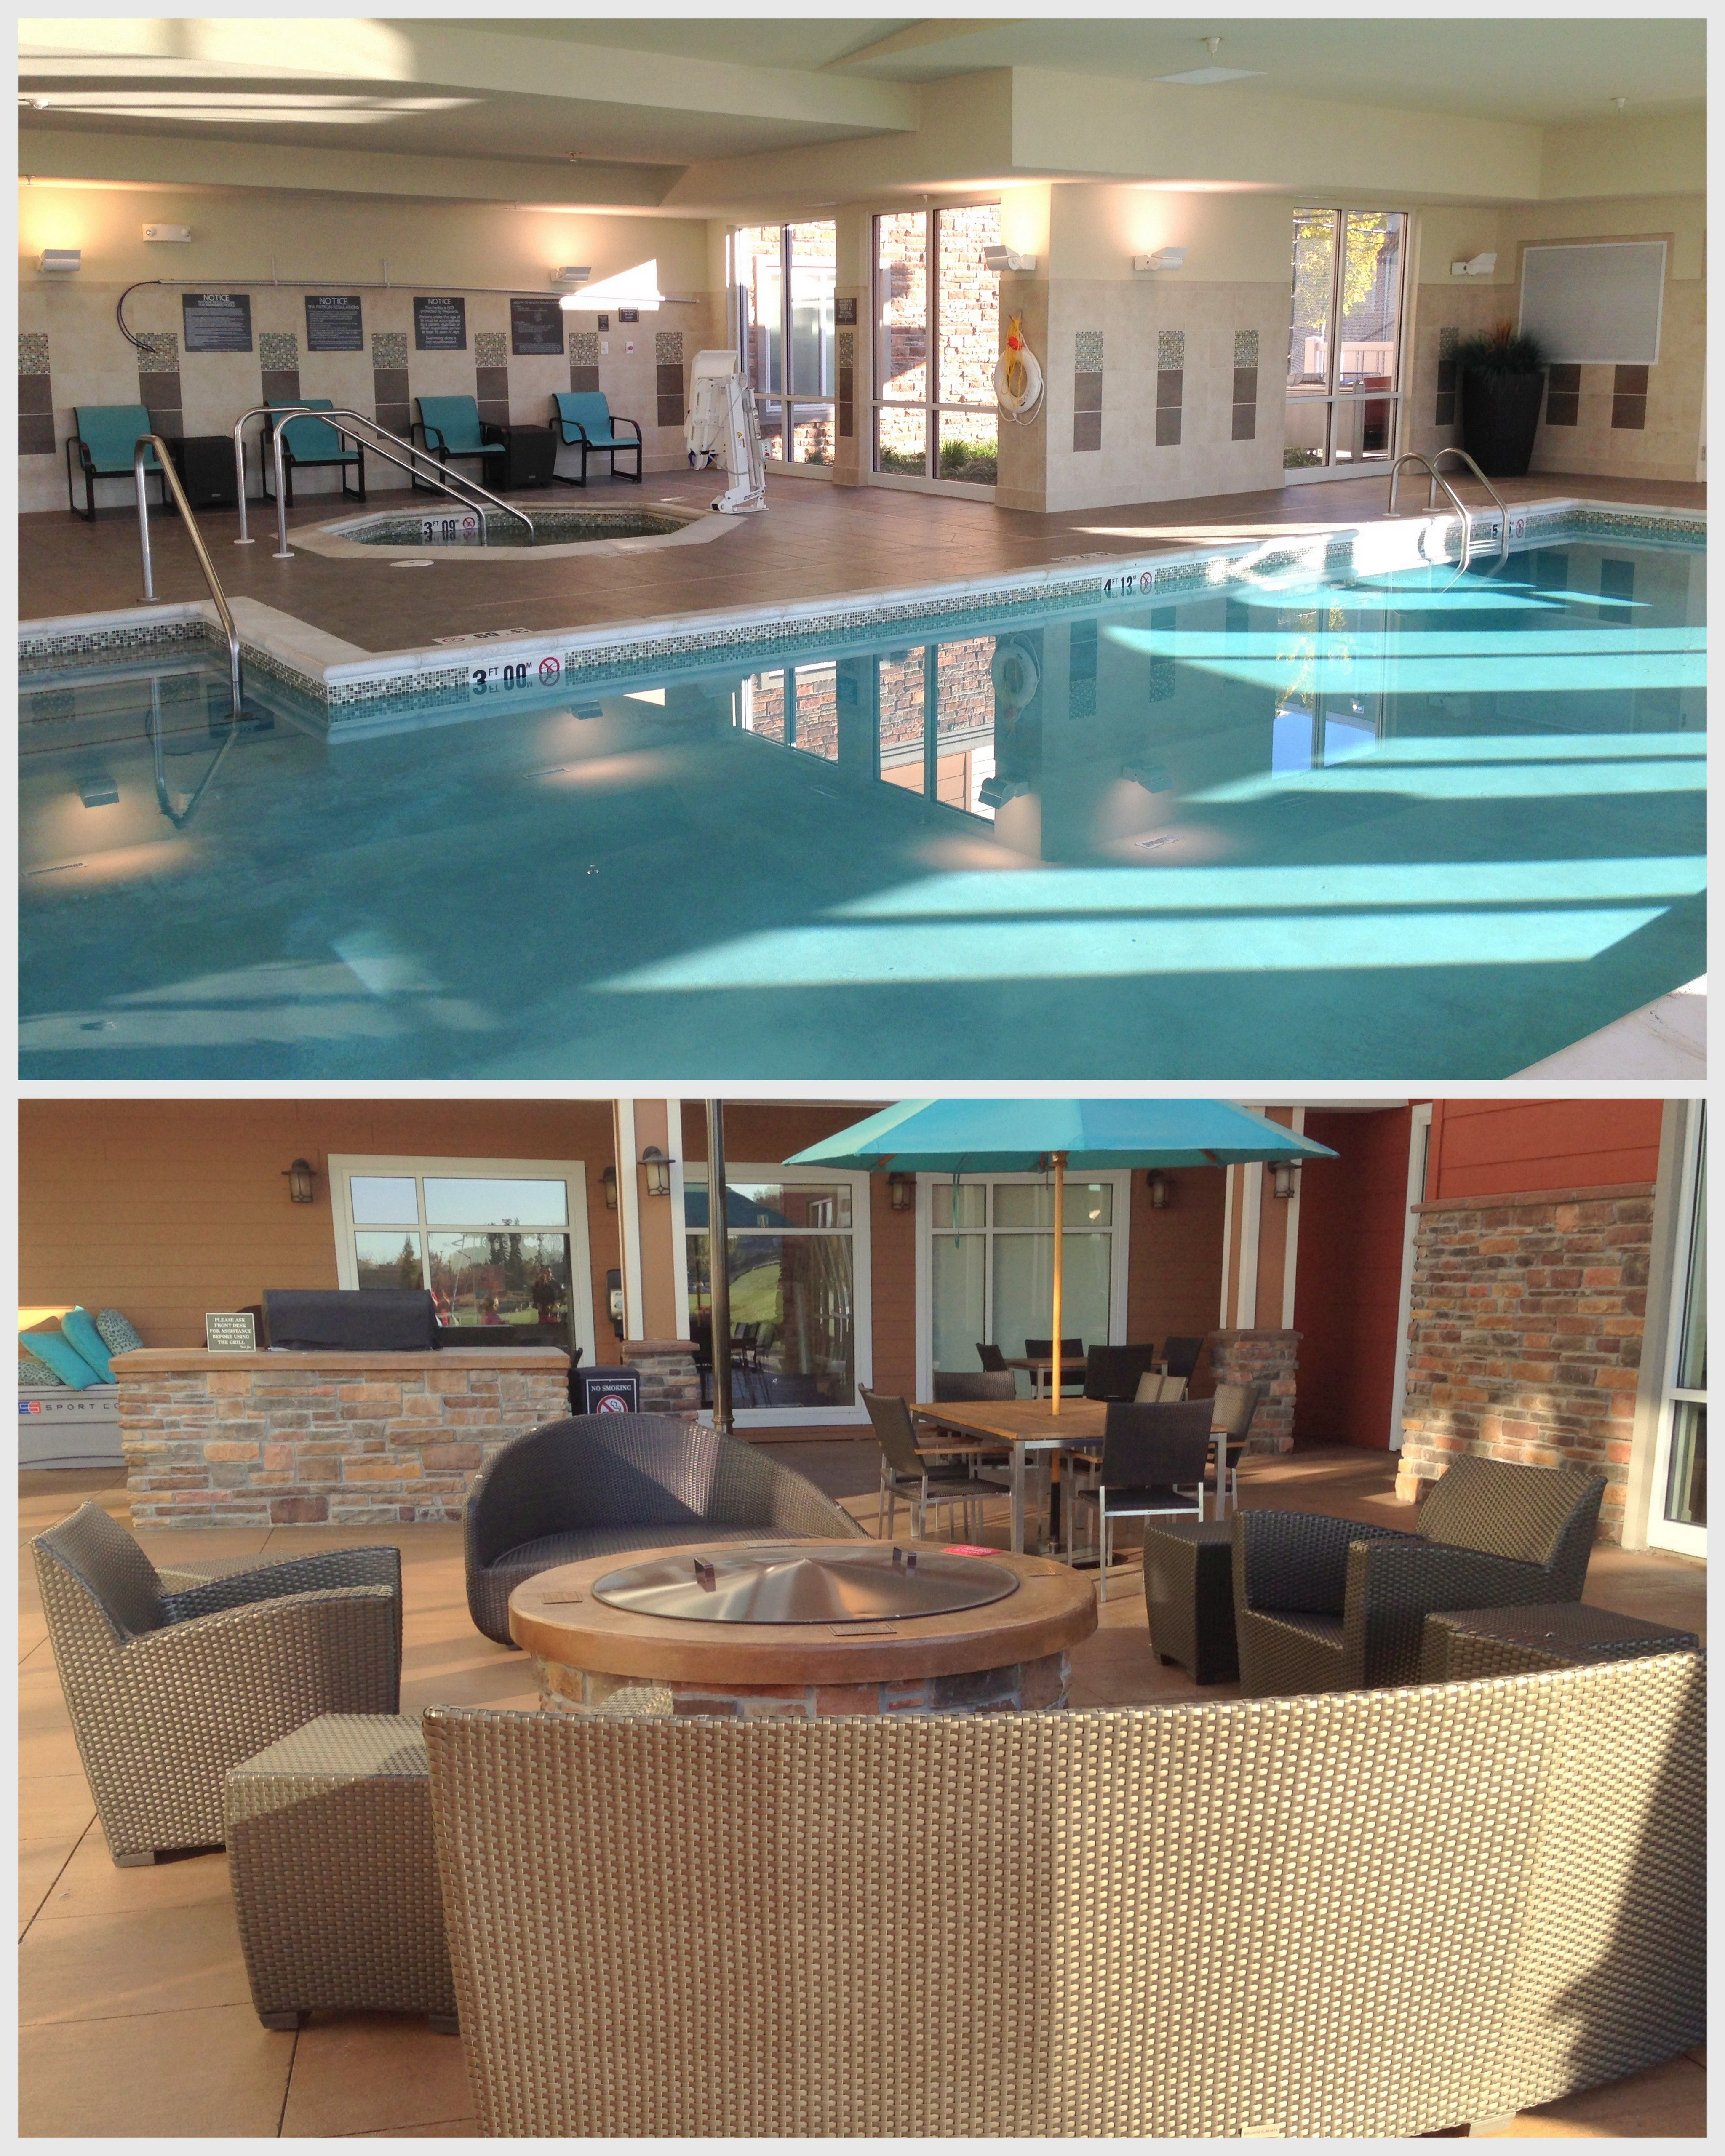 All-suite Residence Inn by Marriott is my pick for the best family hotel group. Residence Inn in Springfield, Illinois